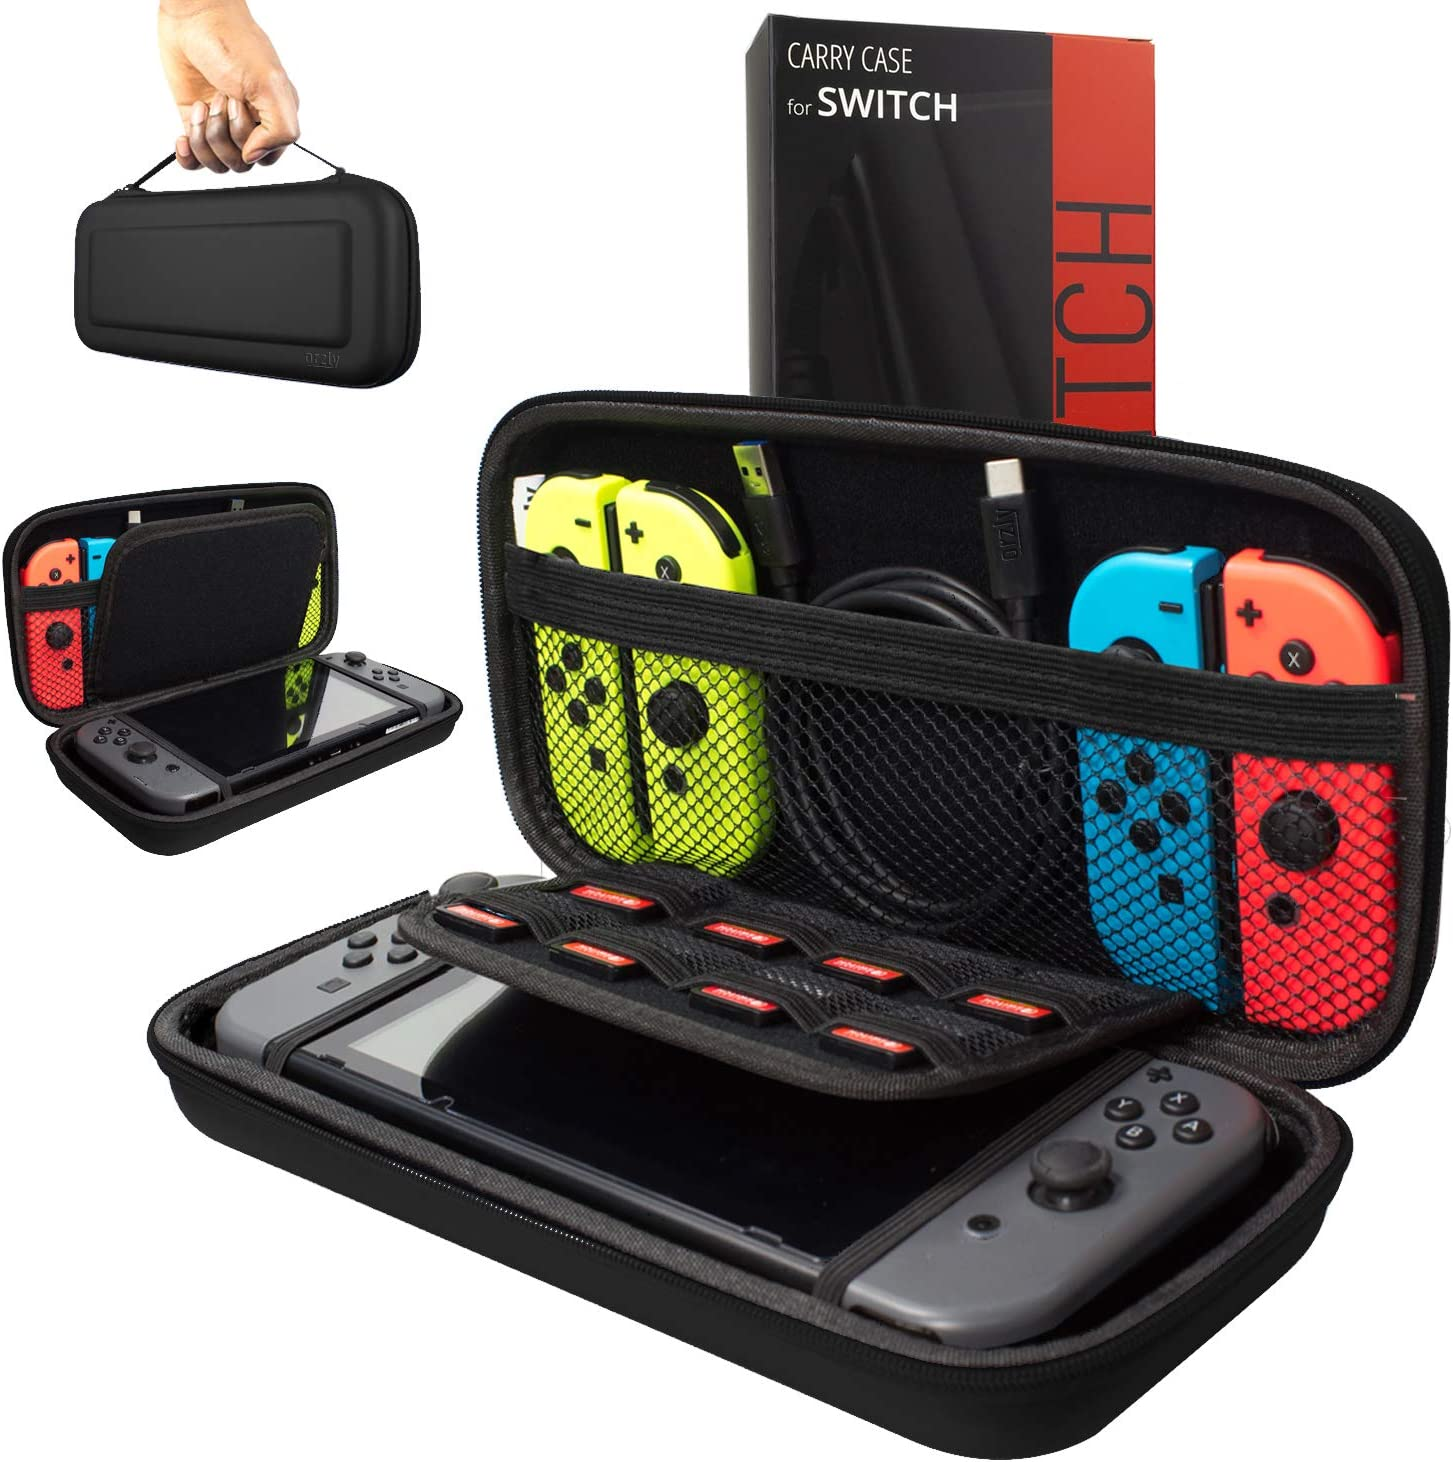 62dd511701826 Orzly Carry Case Compatible With Nintendo Switch - BLACK Protective Hard  Portable Travel Carry Case Shell Pouch for Nintendo Switch Console    Accessories